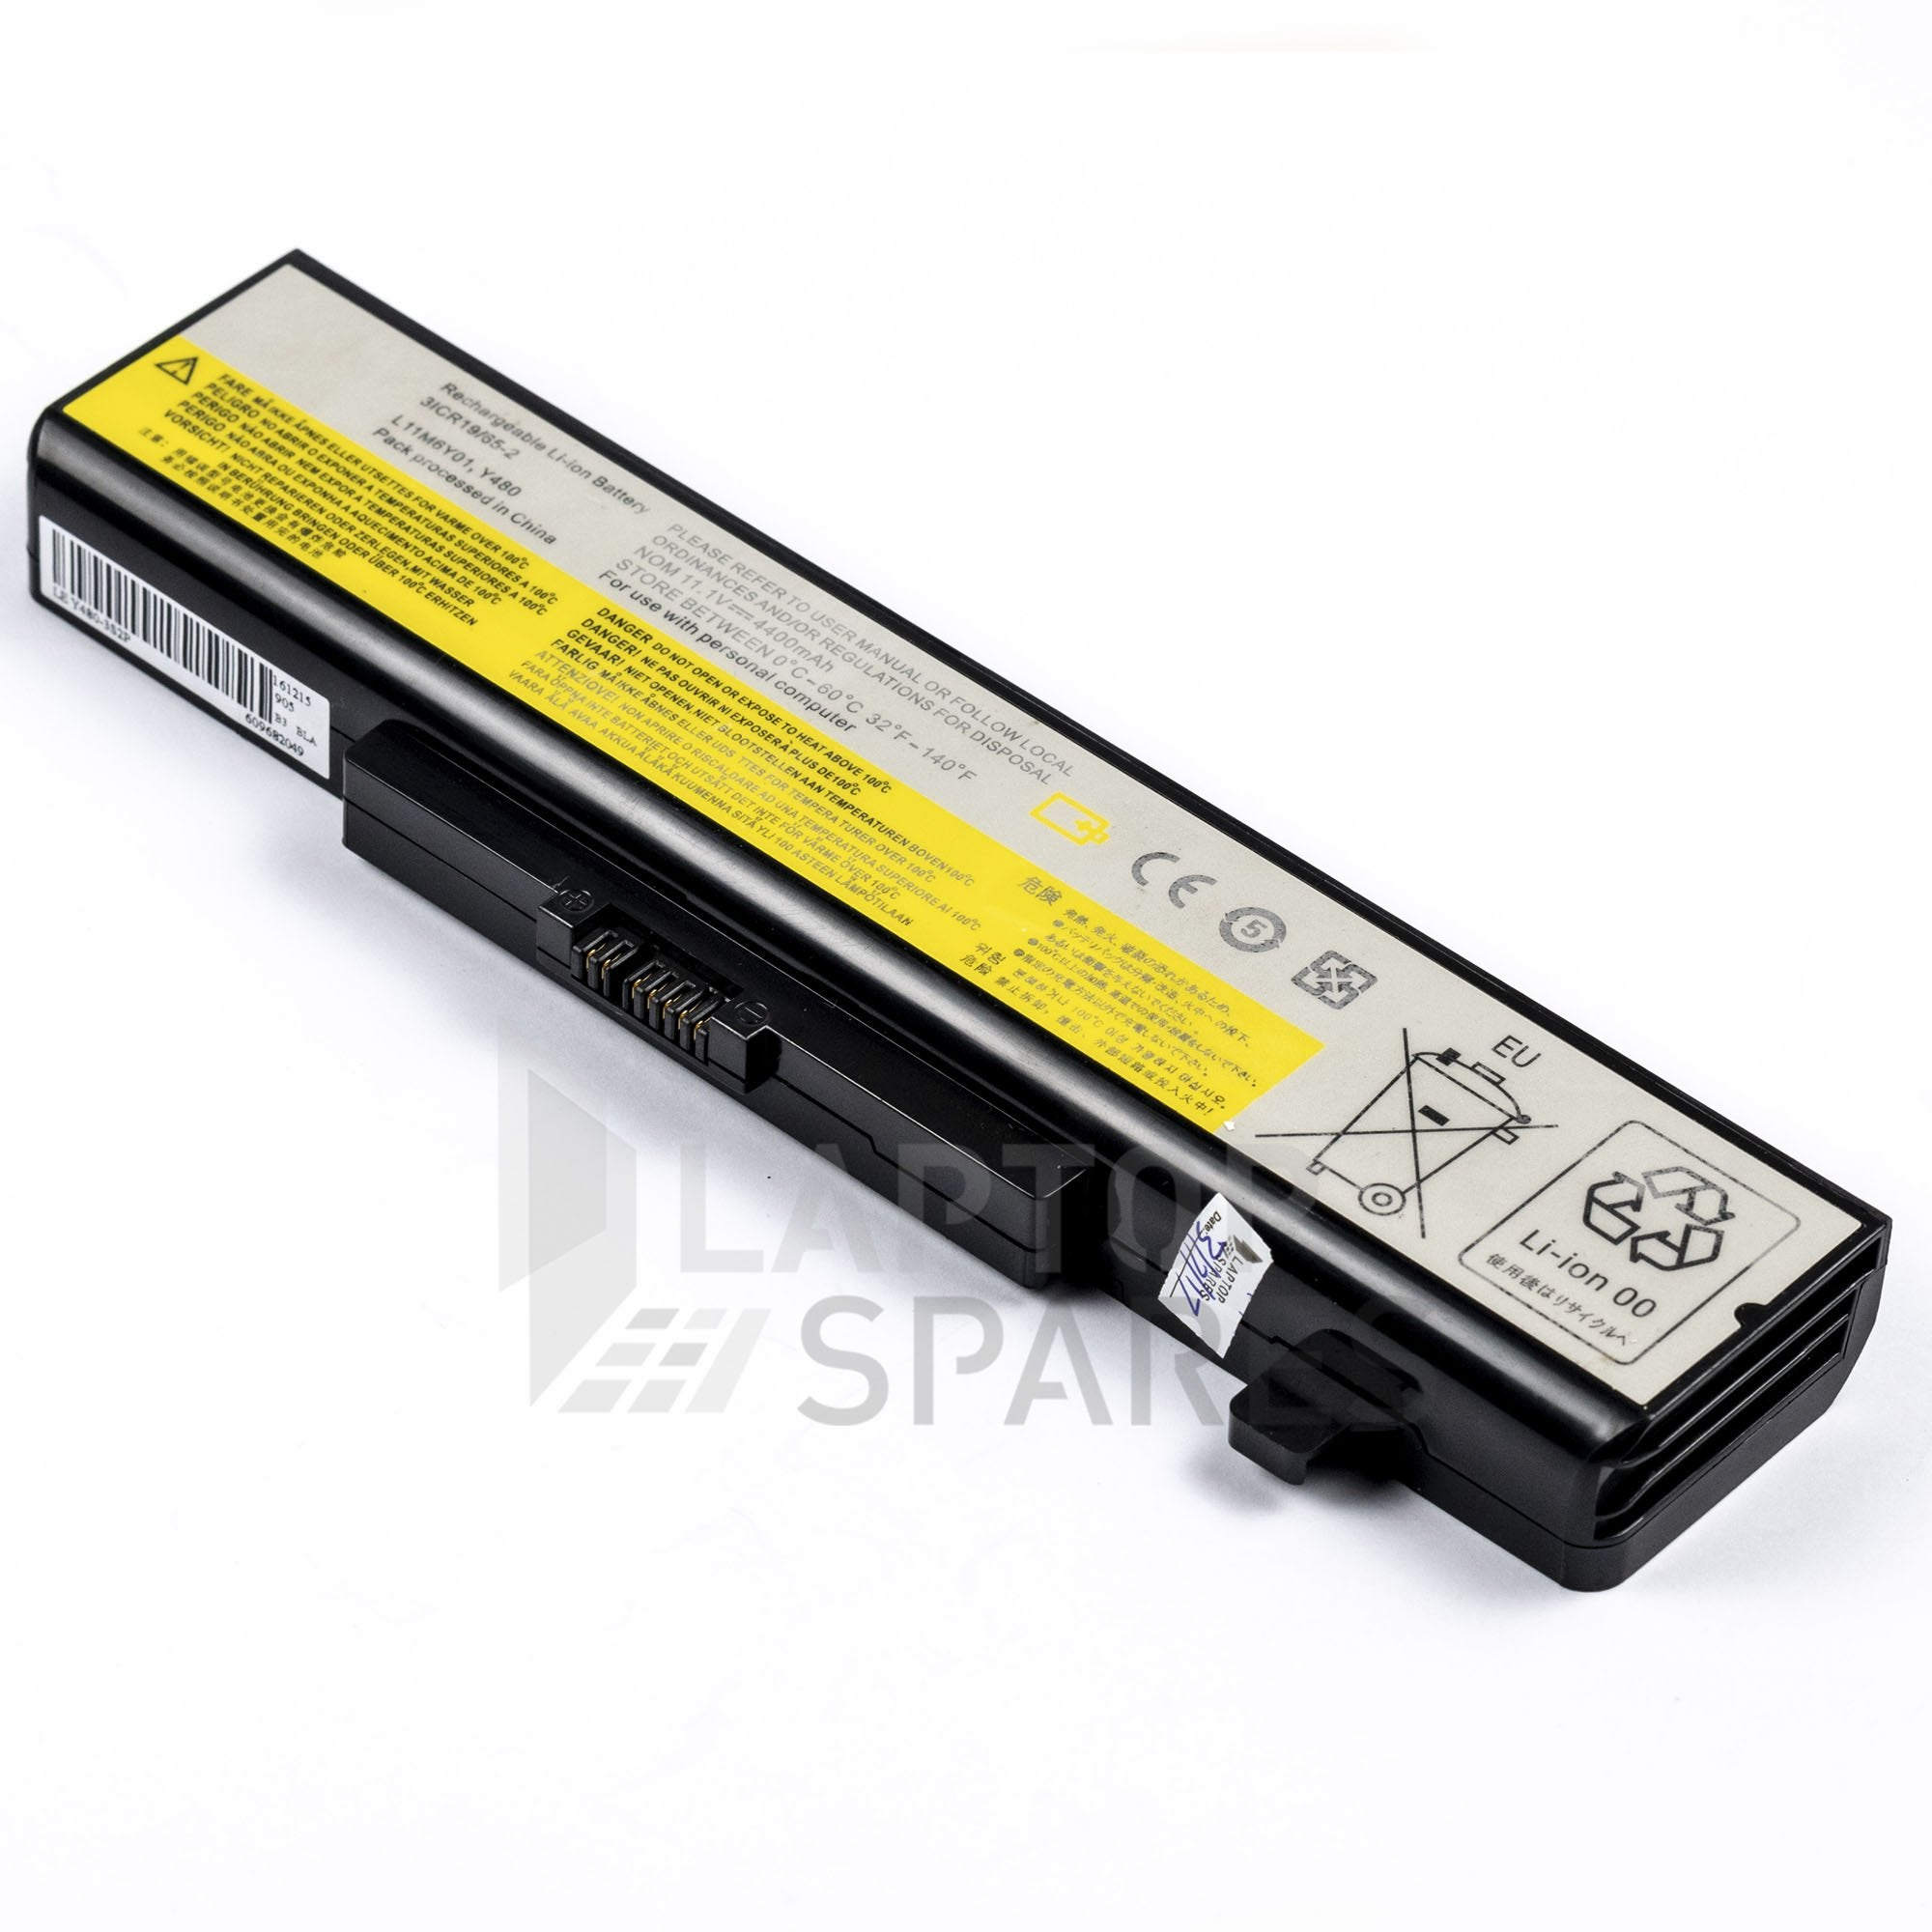 Lenovo IdeaPad G580 G585 4400mAh 6 Cell Battery